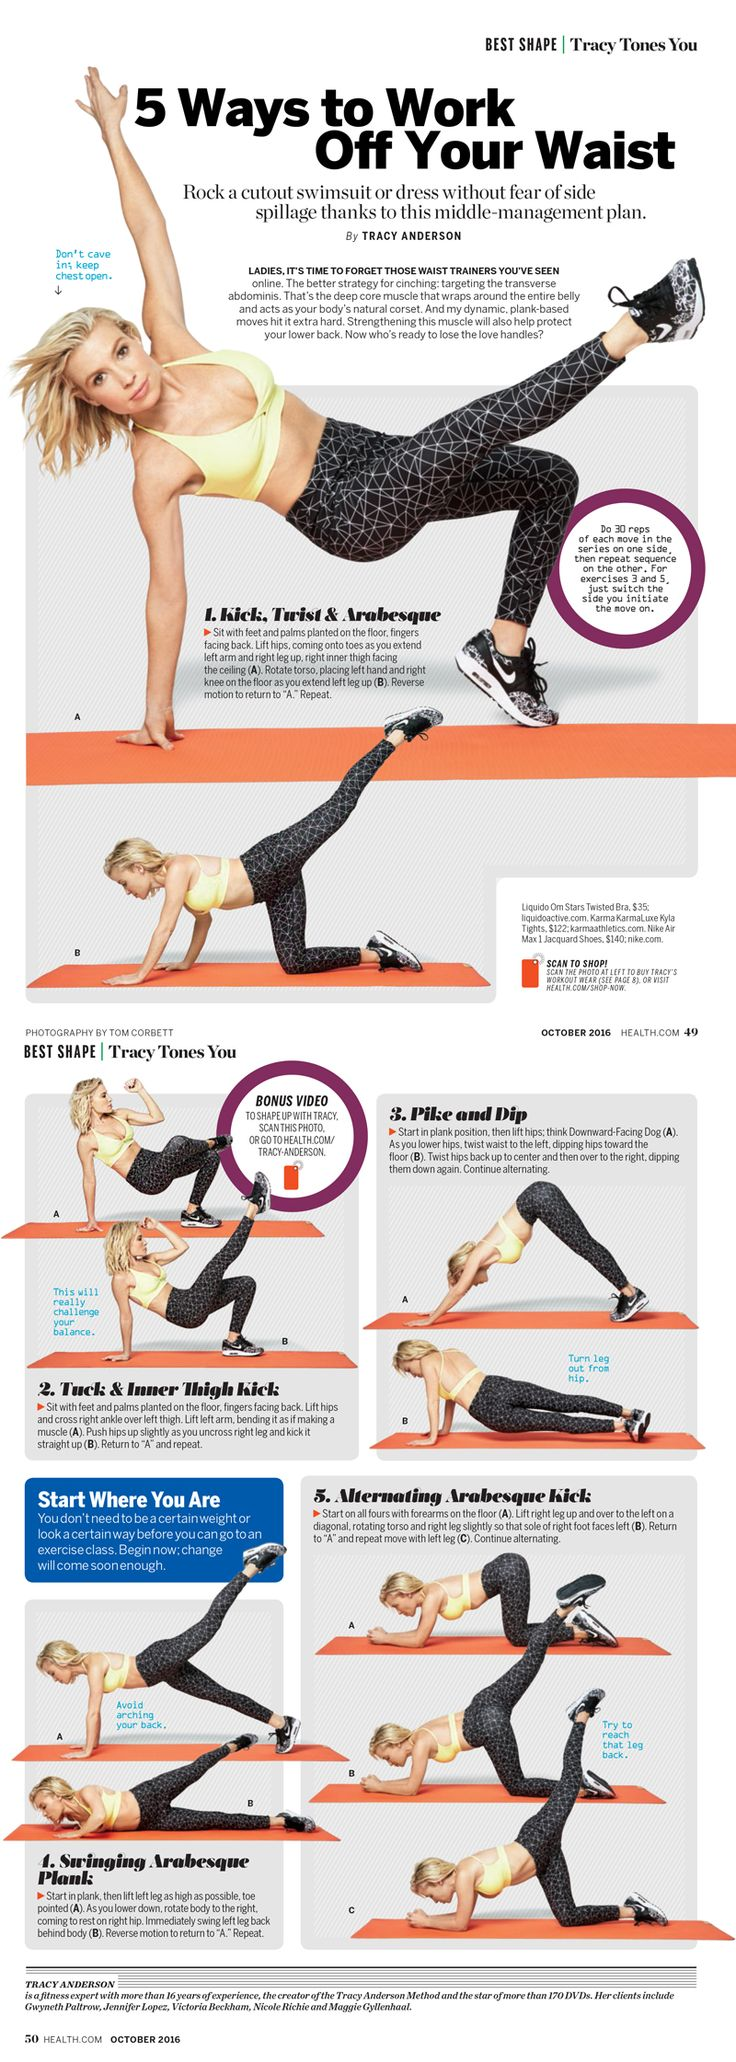 5 Ways to Work Off Your Waist by Tracy Anderson in Health mag